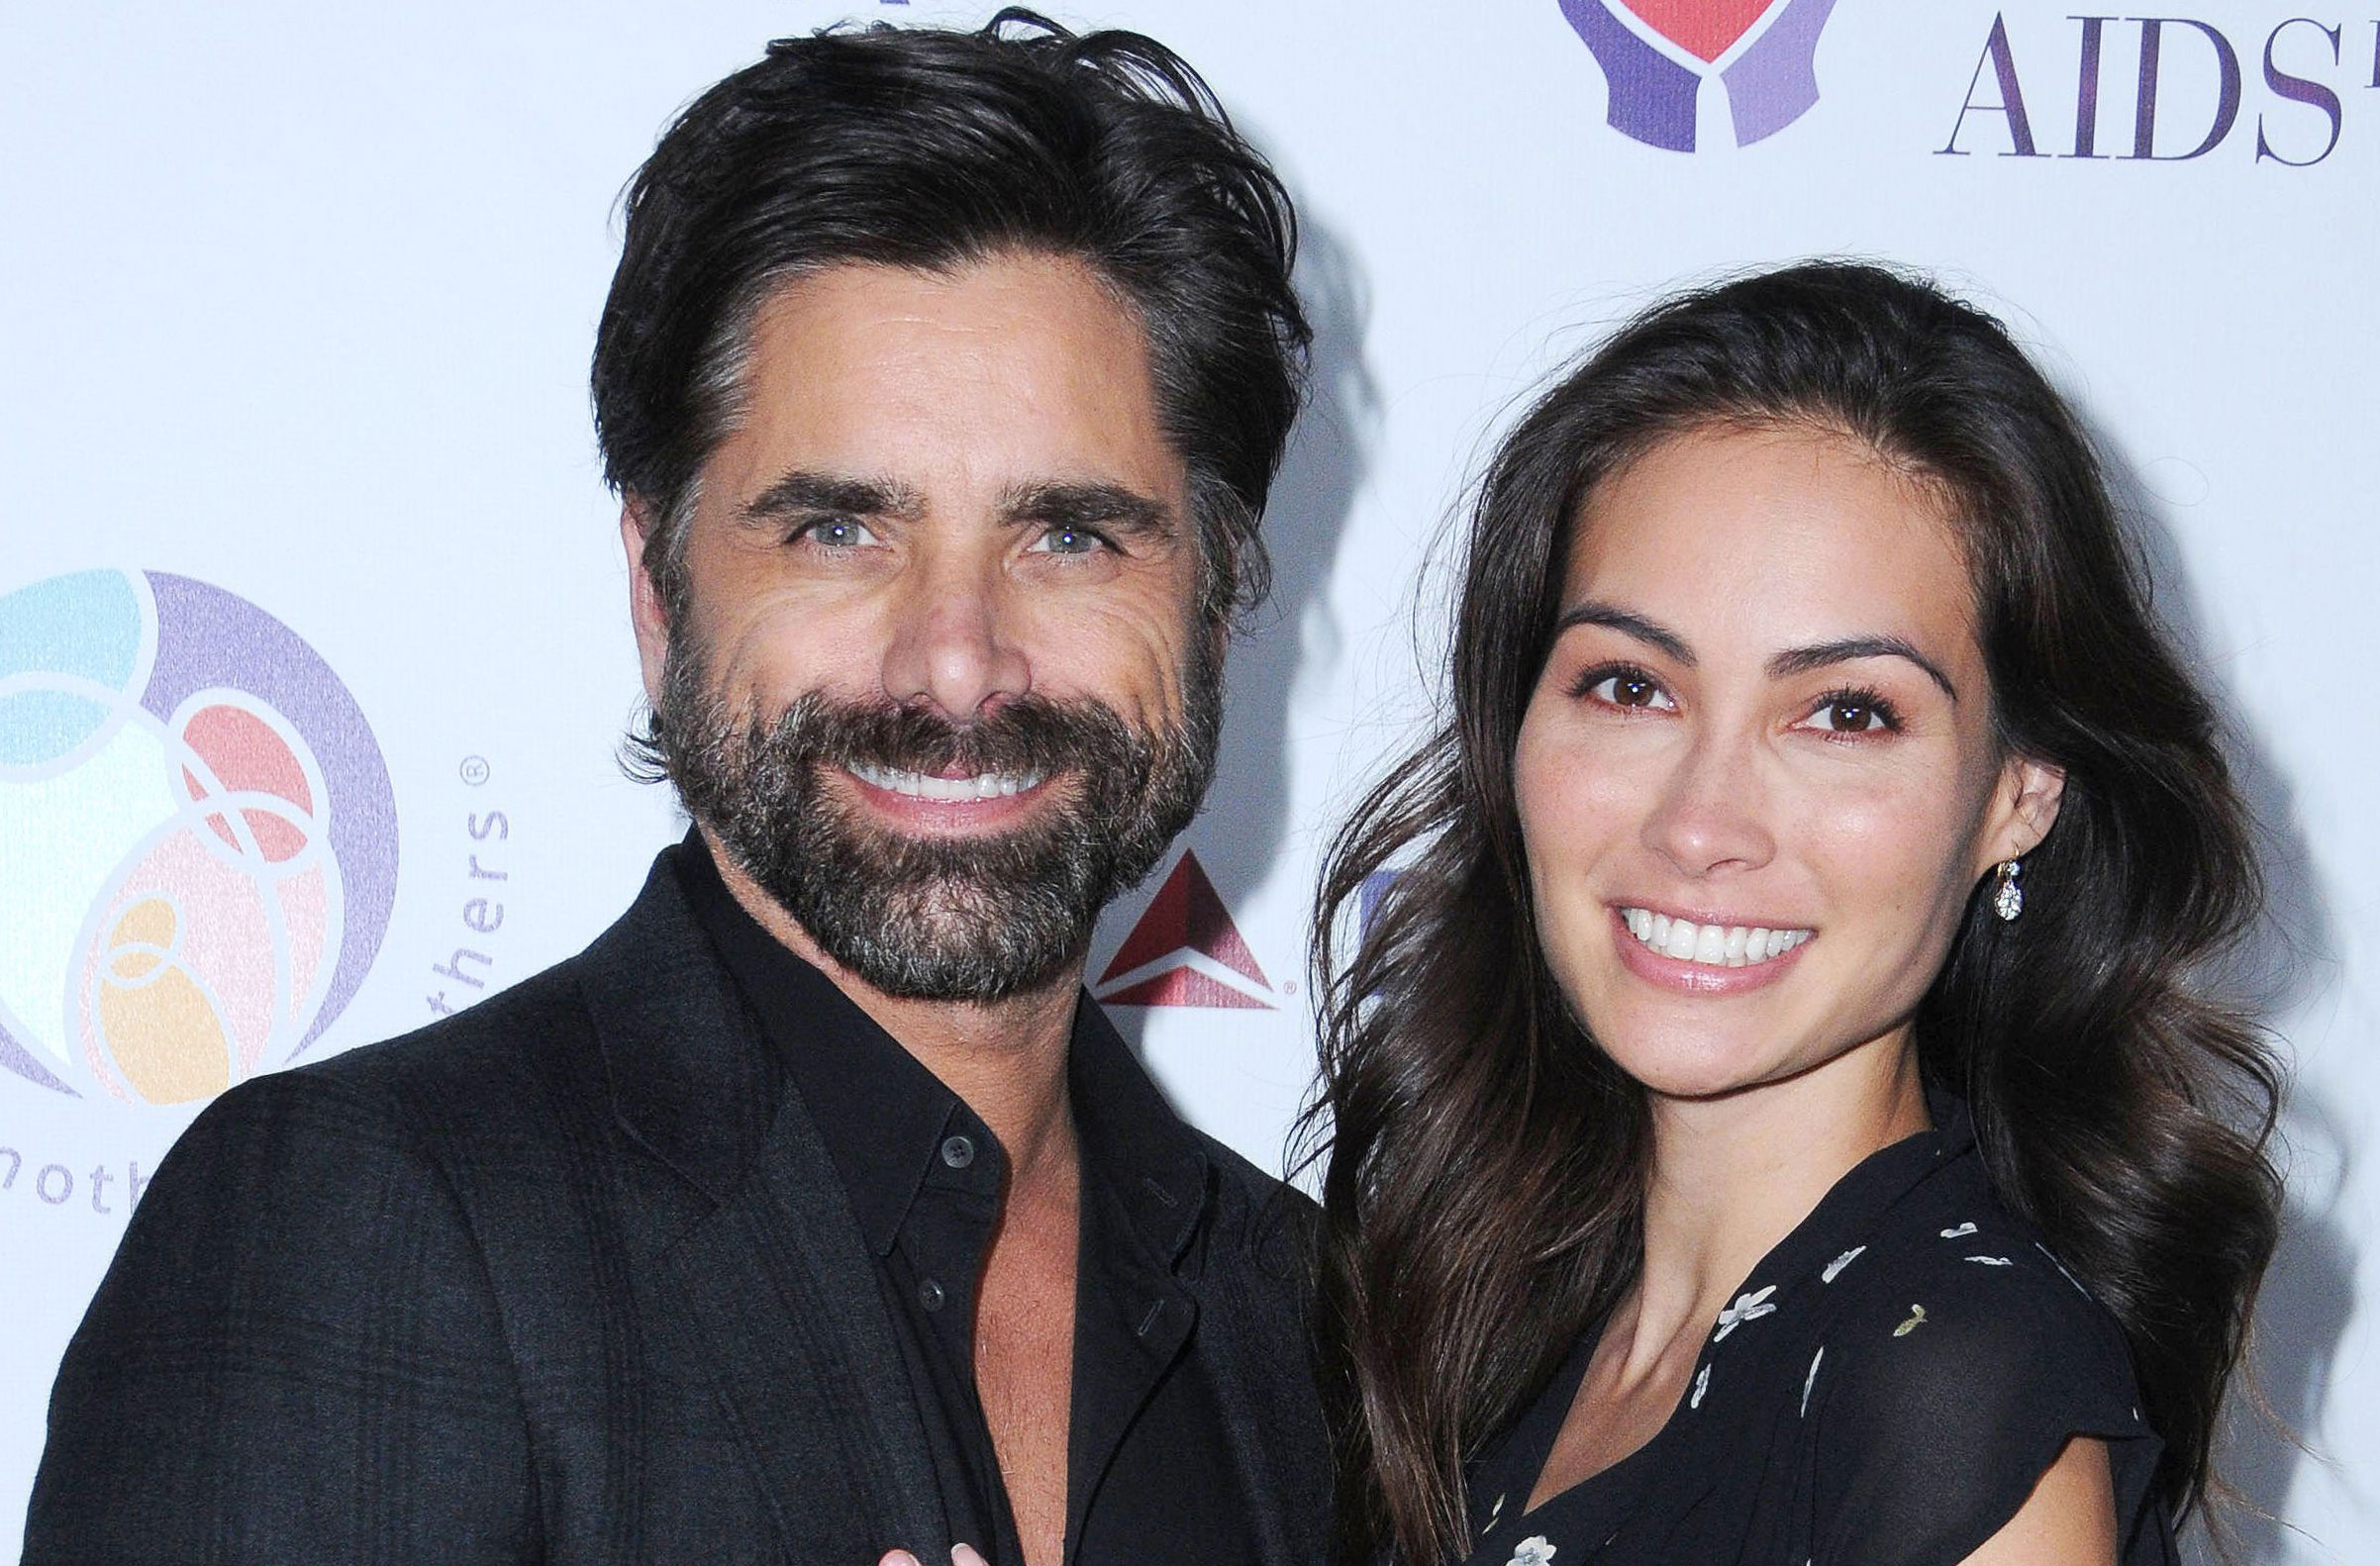 John Stamos Welcomes First Child With Wife Caitlin Mchugh